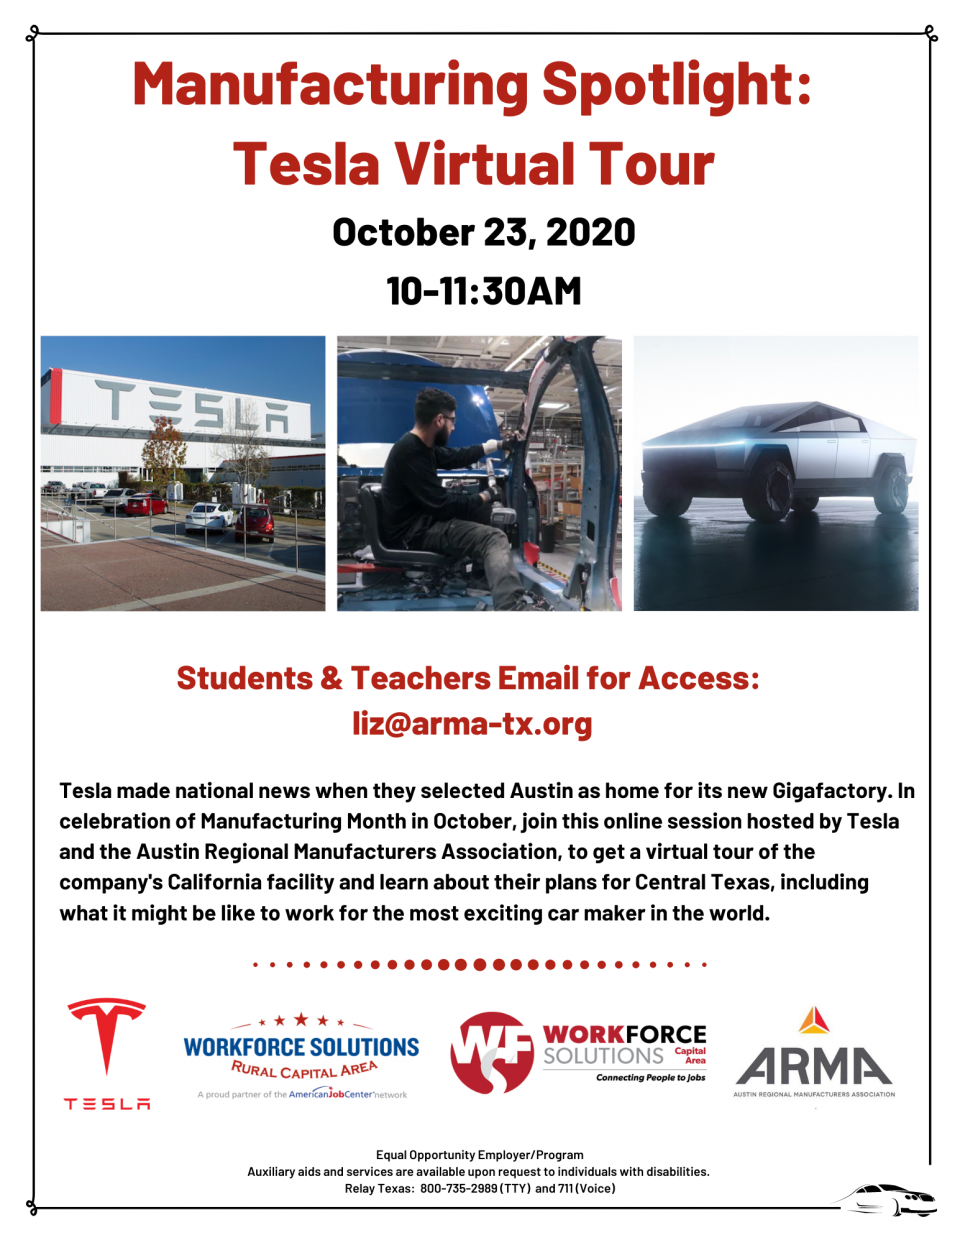 Central Texas Students & Teachers, Help Celebrate Manufacturing: Don't Miss the Tesla Virtual Tour on October 23 at 10AM